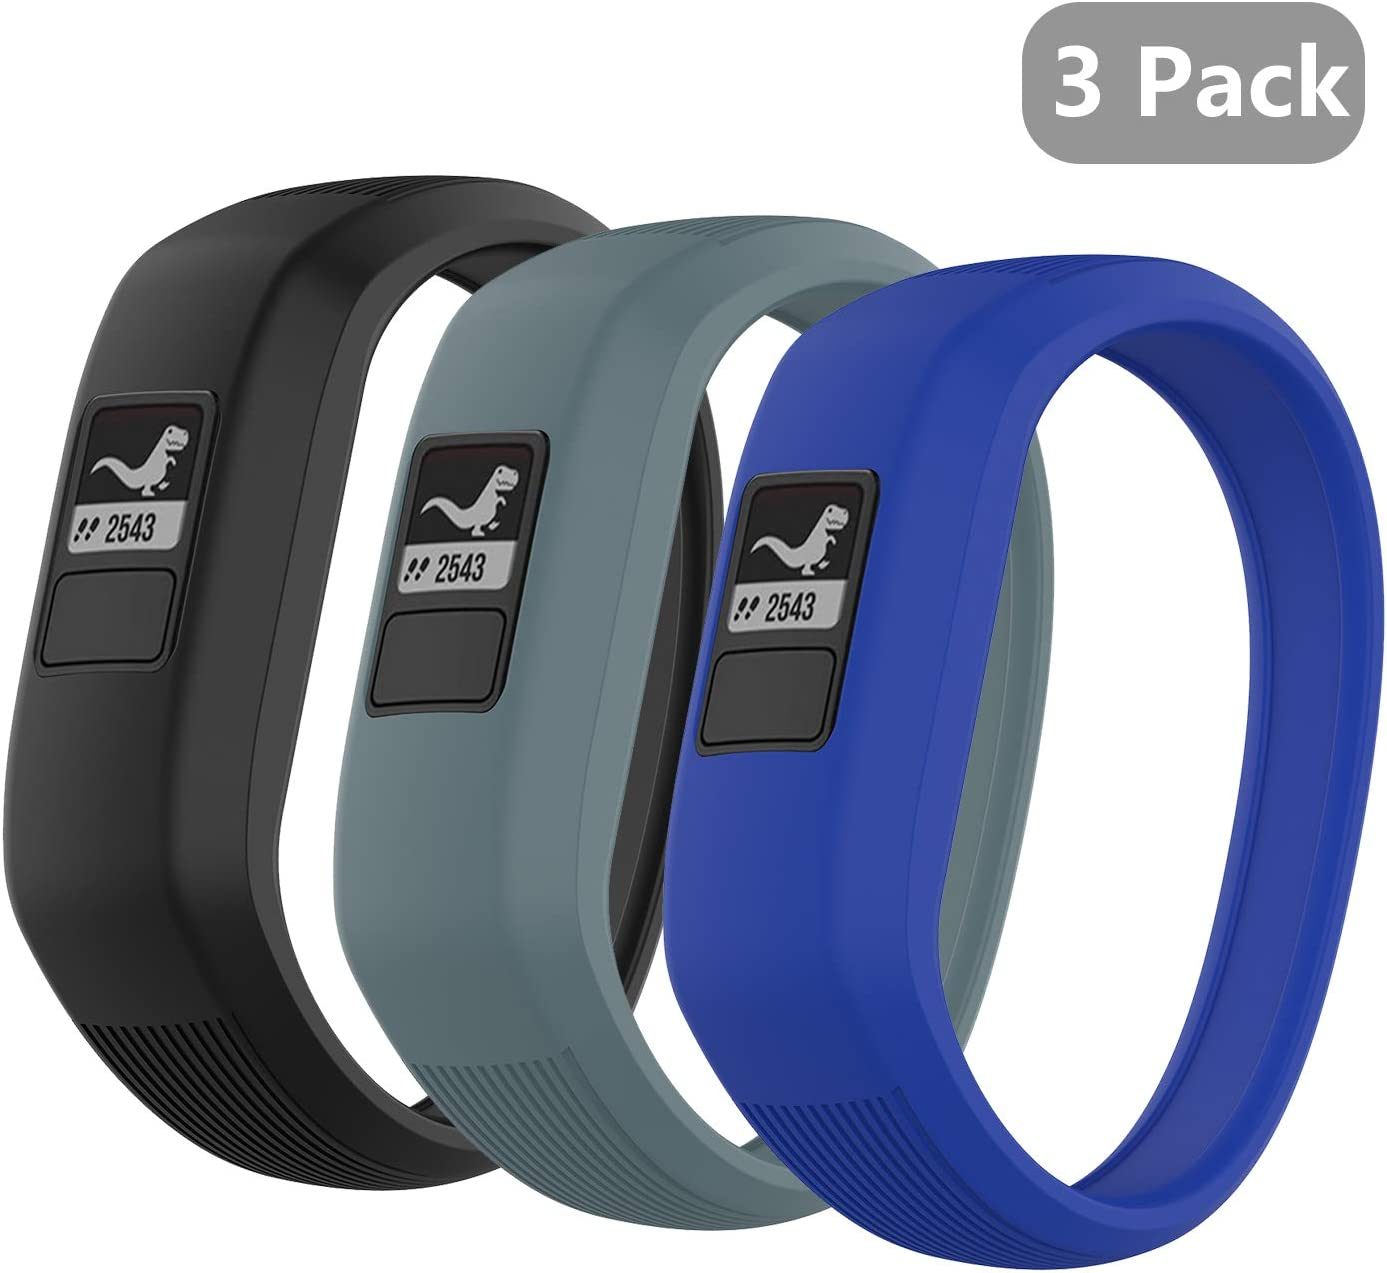 (3 Pack) Seltureone Band Compatible for Garmin Vivofit jr,jr 2,3 Bands, All-in-one Silicon Stretchy Replacement Wristbands for Kids Boys Girls (No Tracker)- Black,Cyan,Blue (Small) 611u7qKR2QL